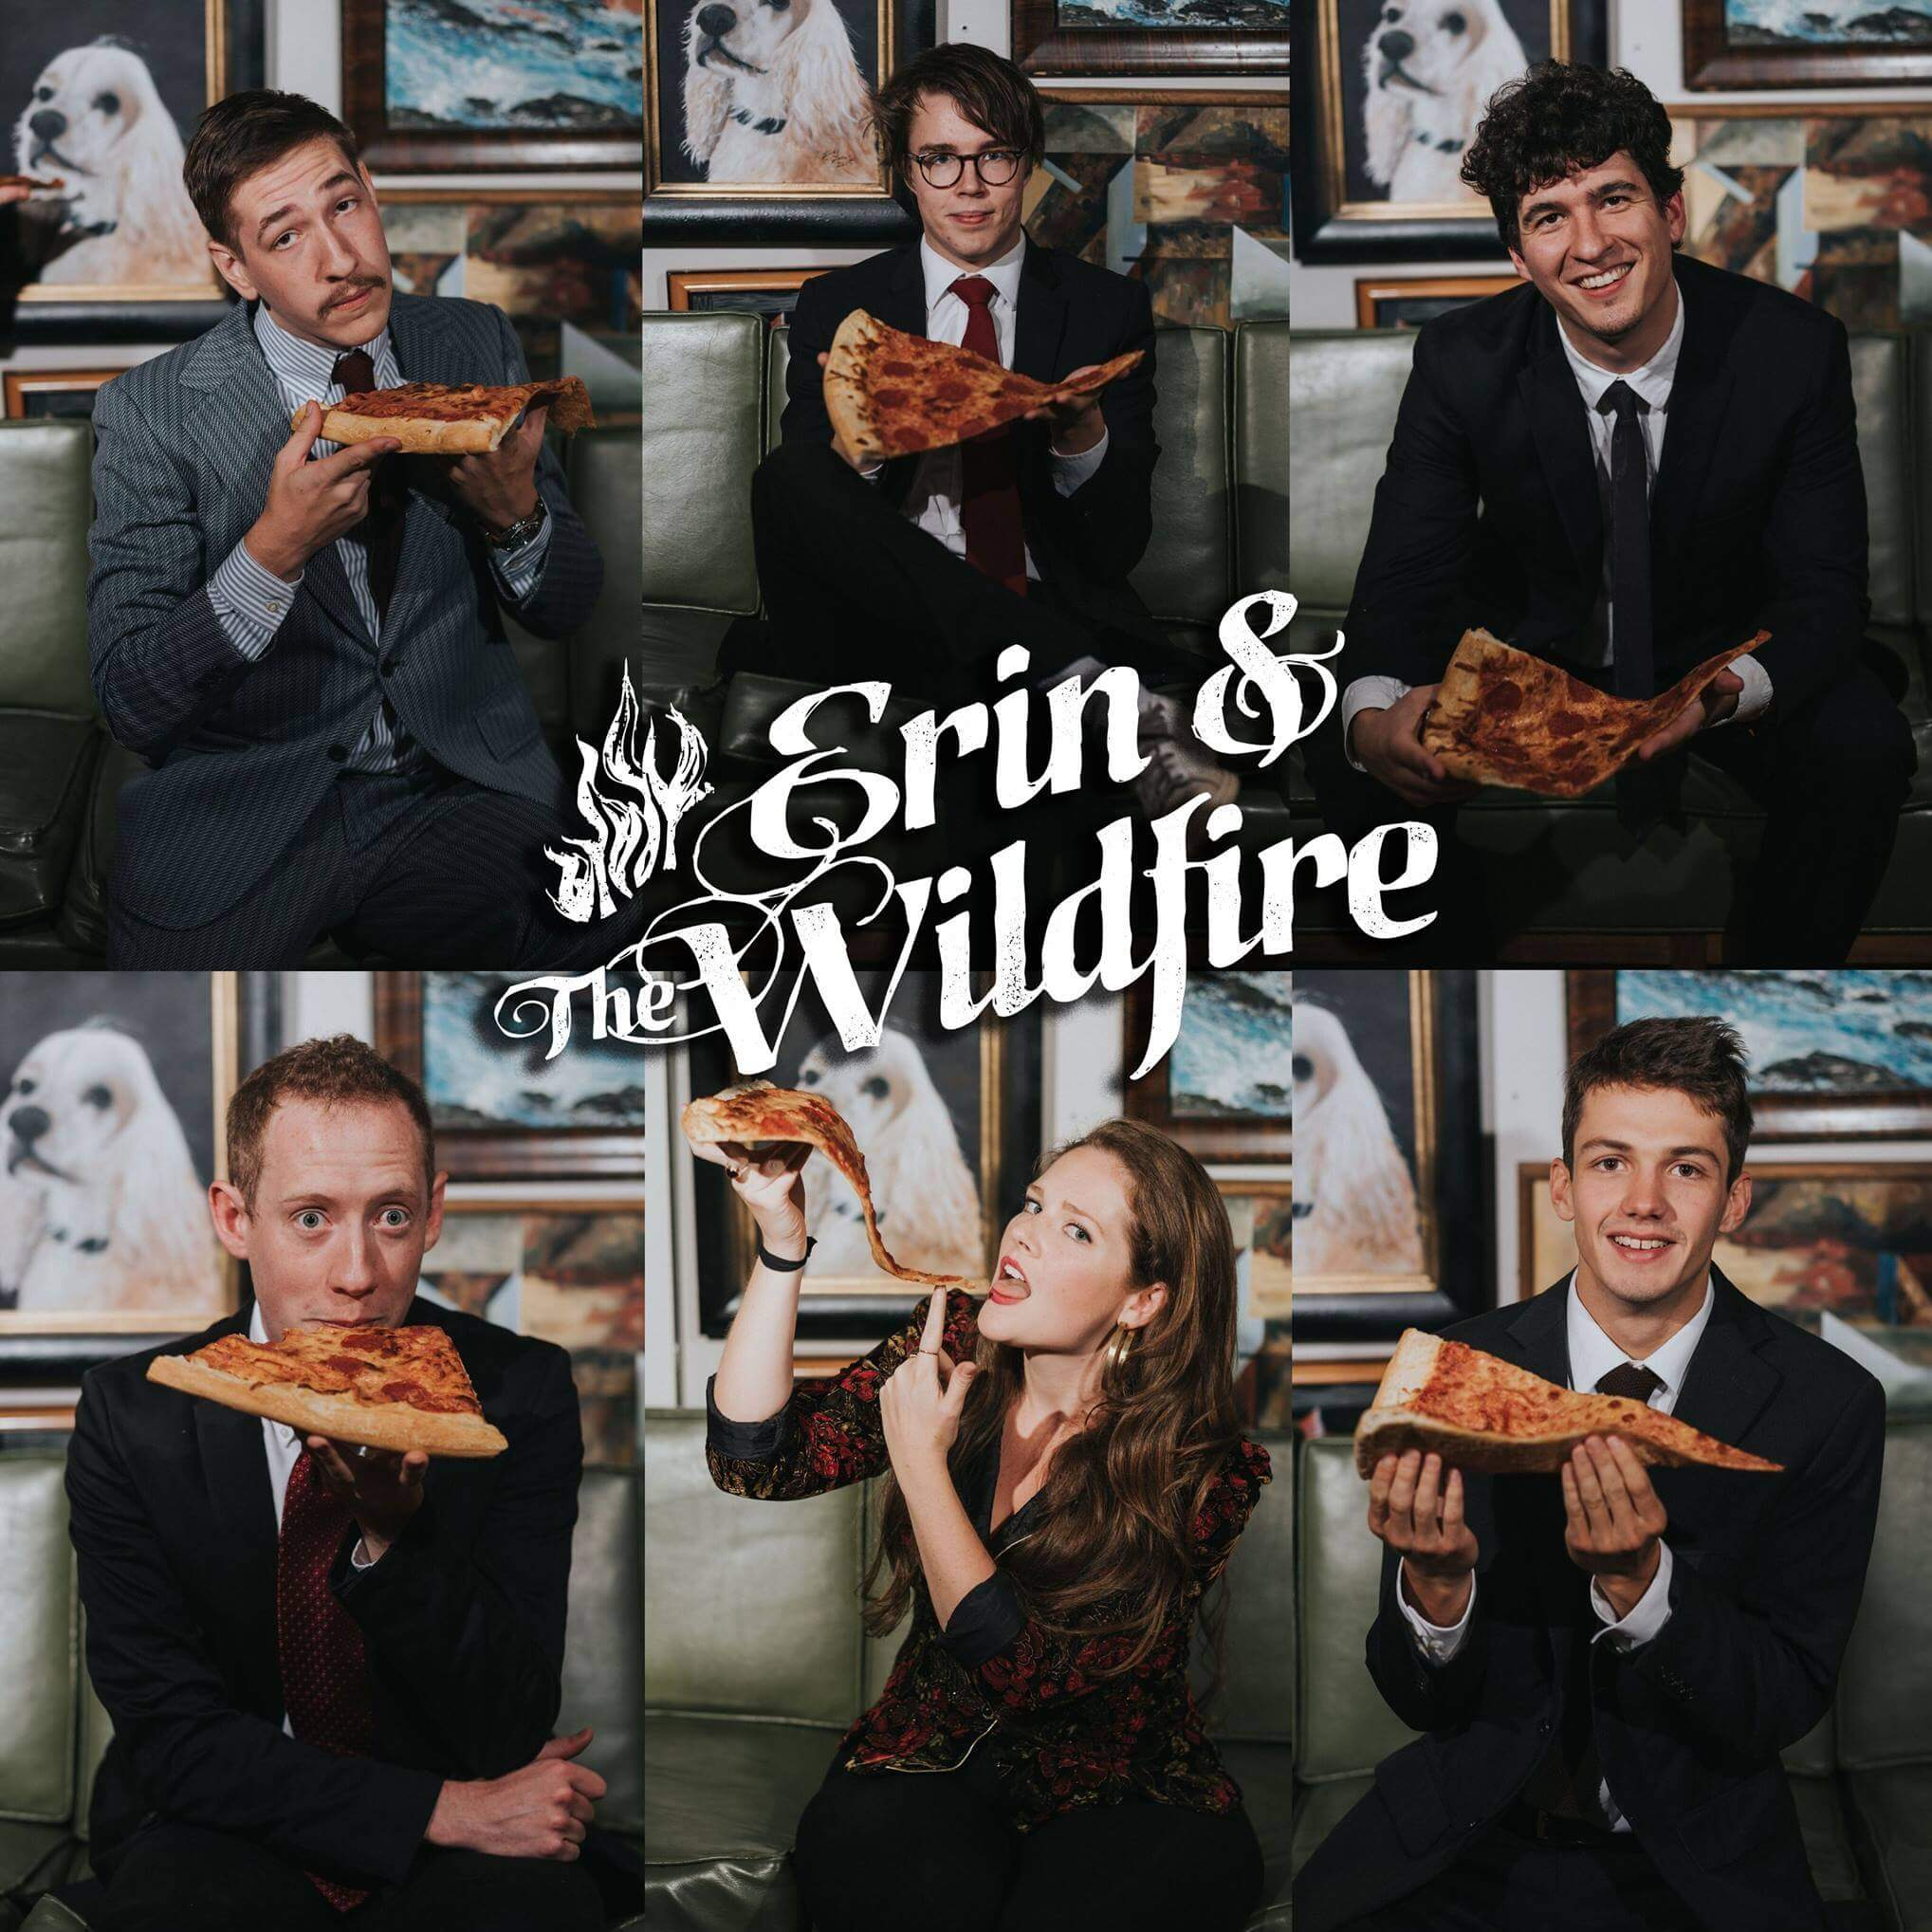 Photo of Erin & The Wildfire - Nov. 24 - Rives